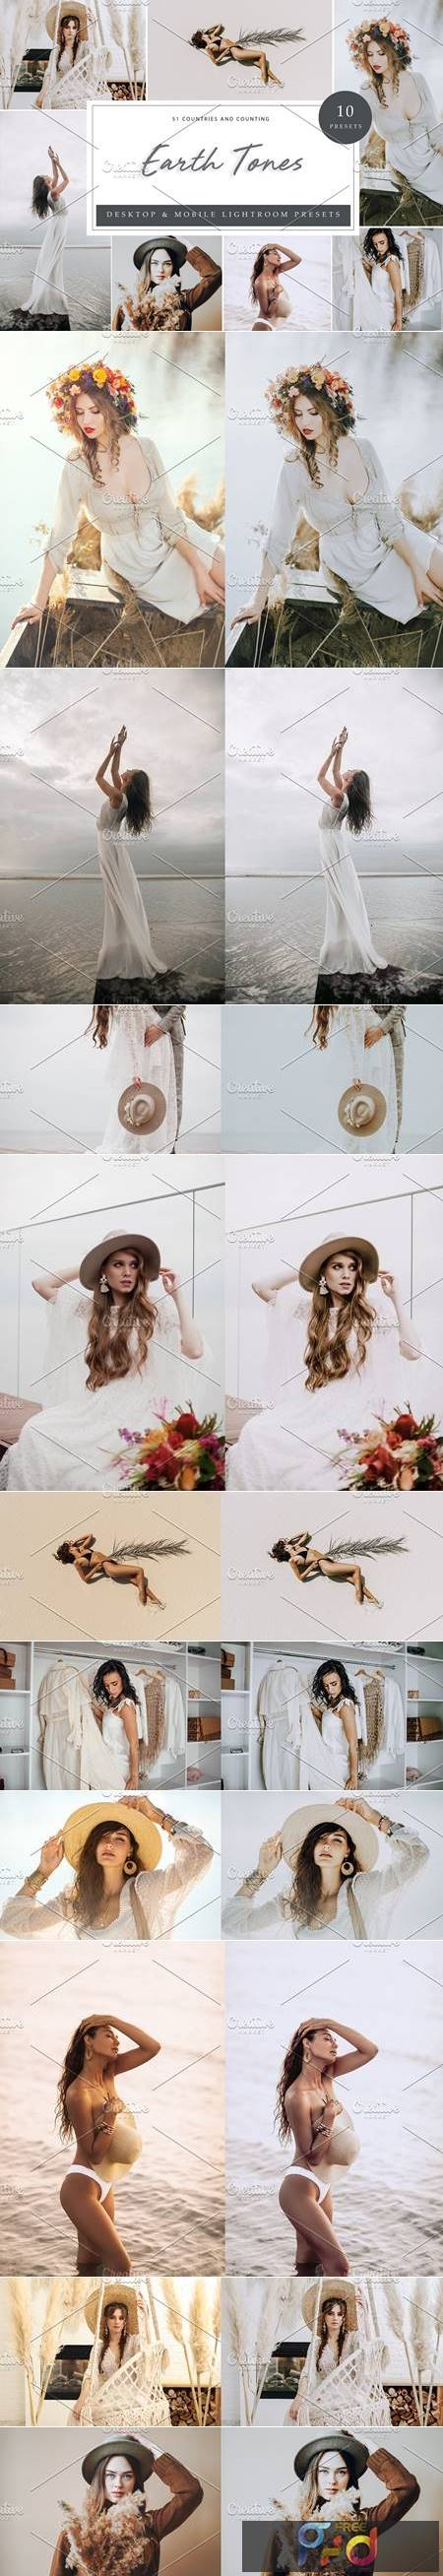 10 x Lightroom Presets, Earth Tones 5962531 1